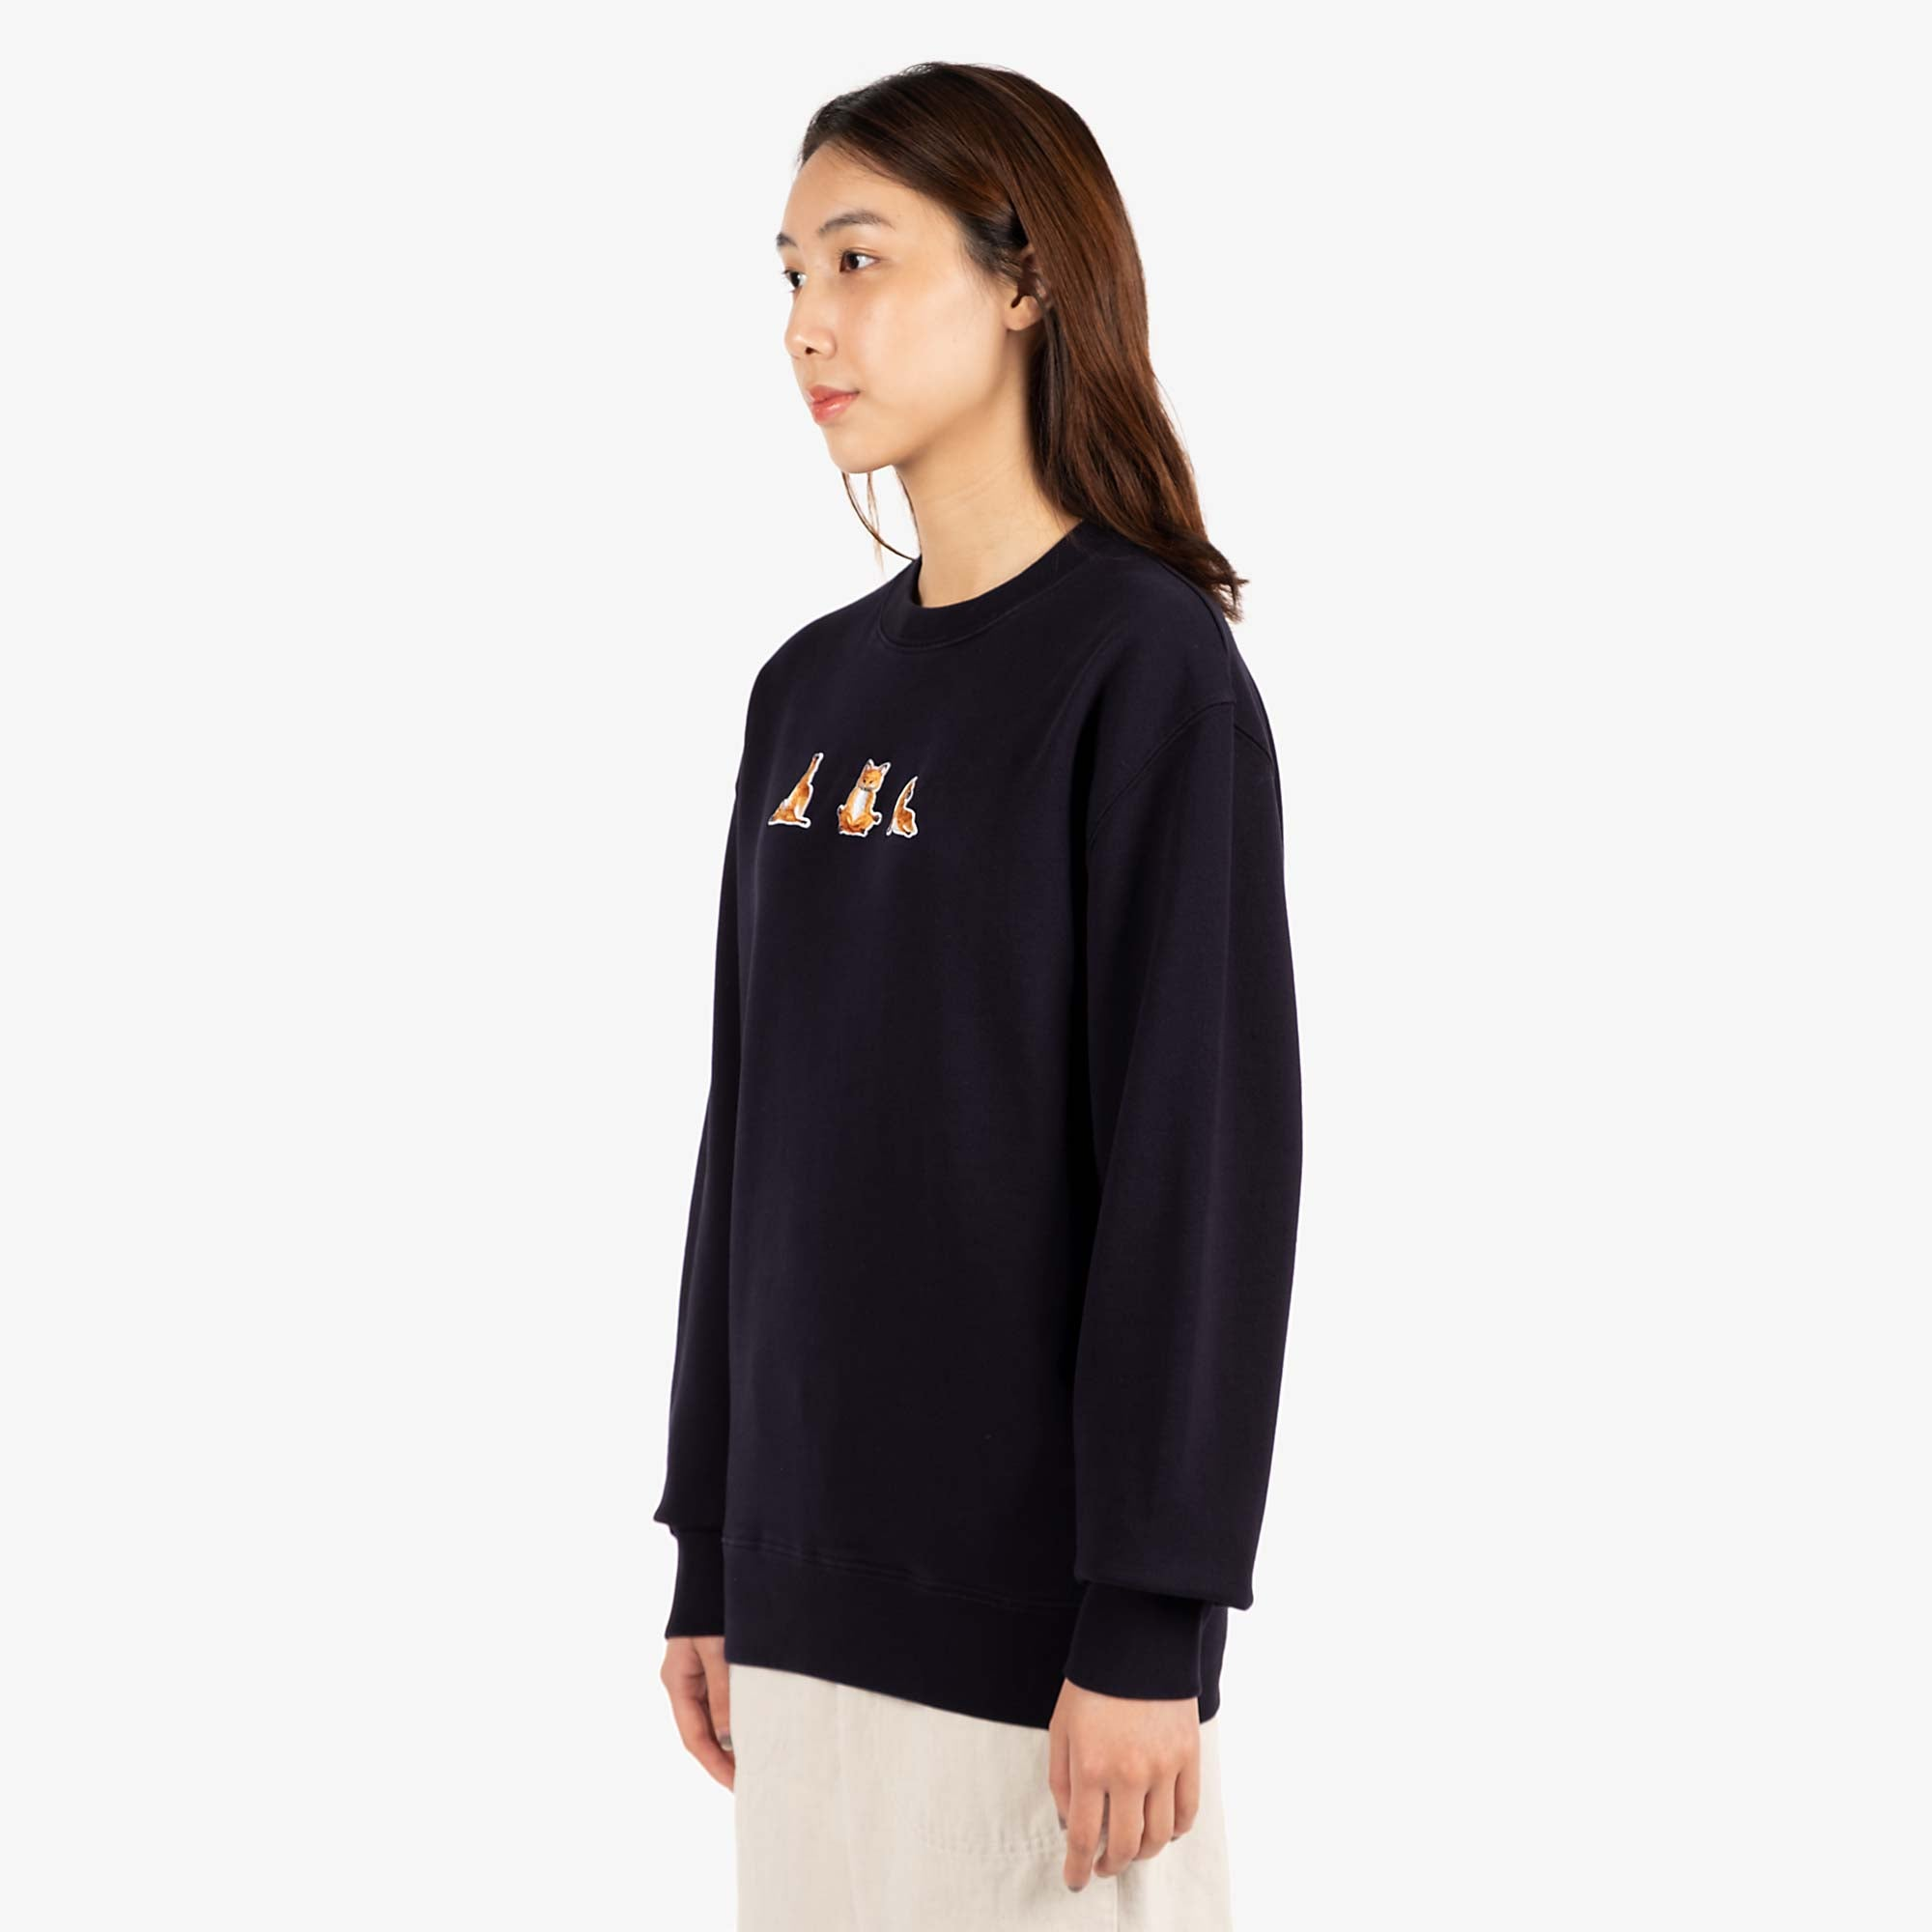 Maison Kitsune Womens Yoga Fox Patches Sweat - Navy 4